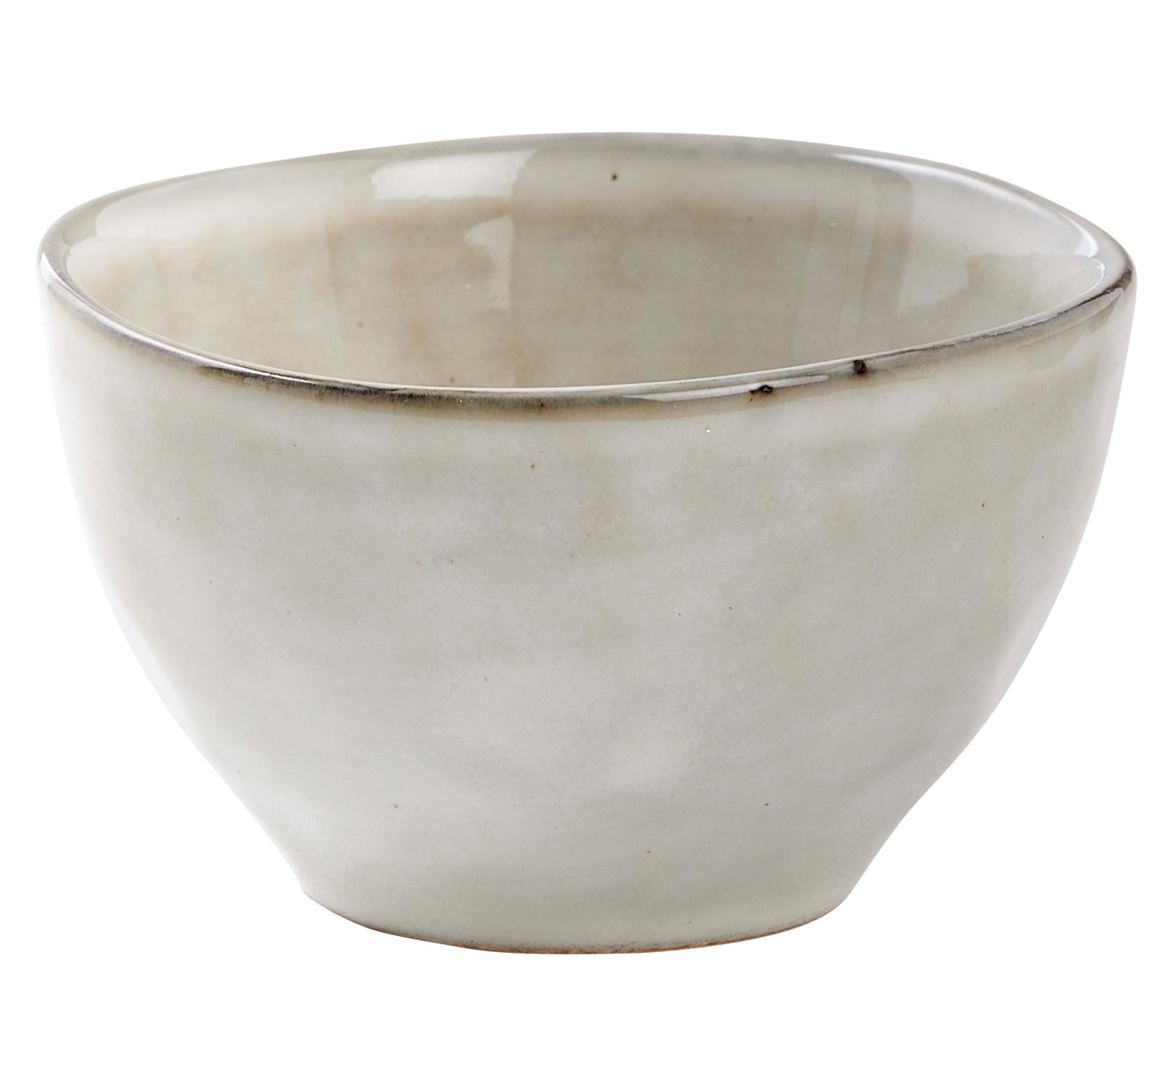 EARTH MARL Bowl wit_earth-marl-bowl-wit